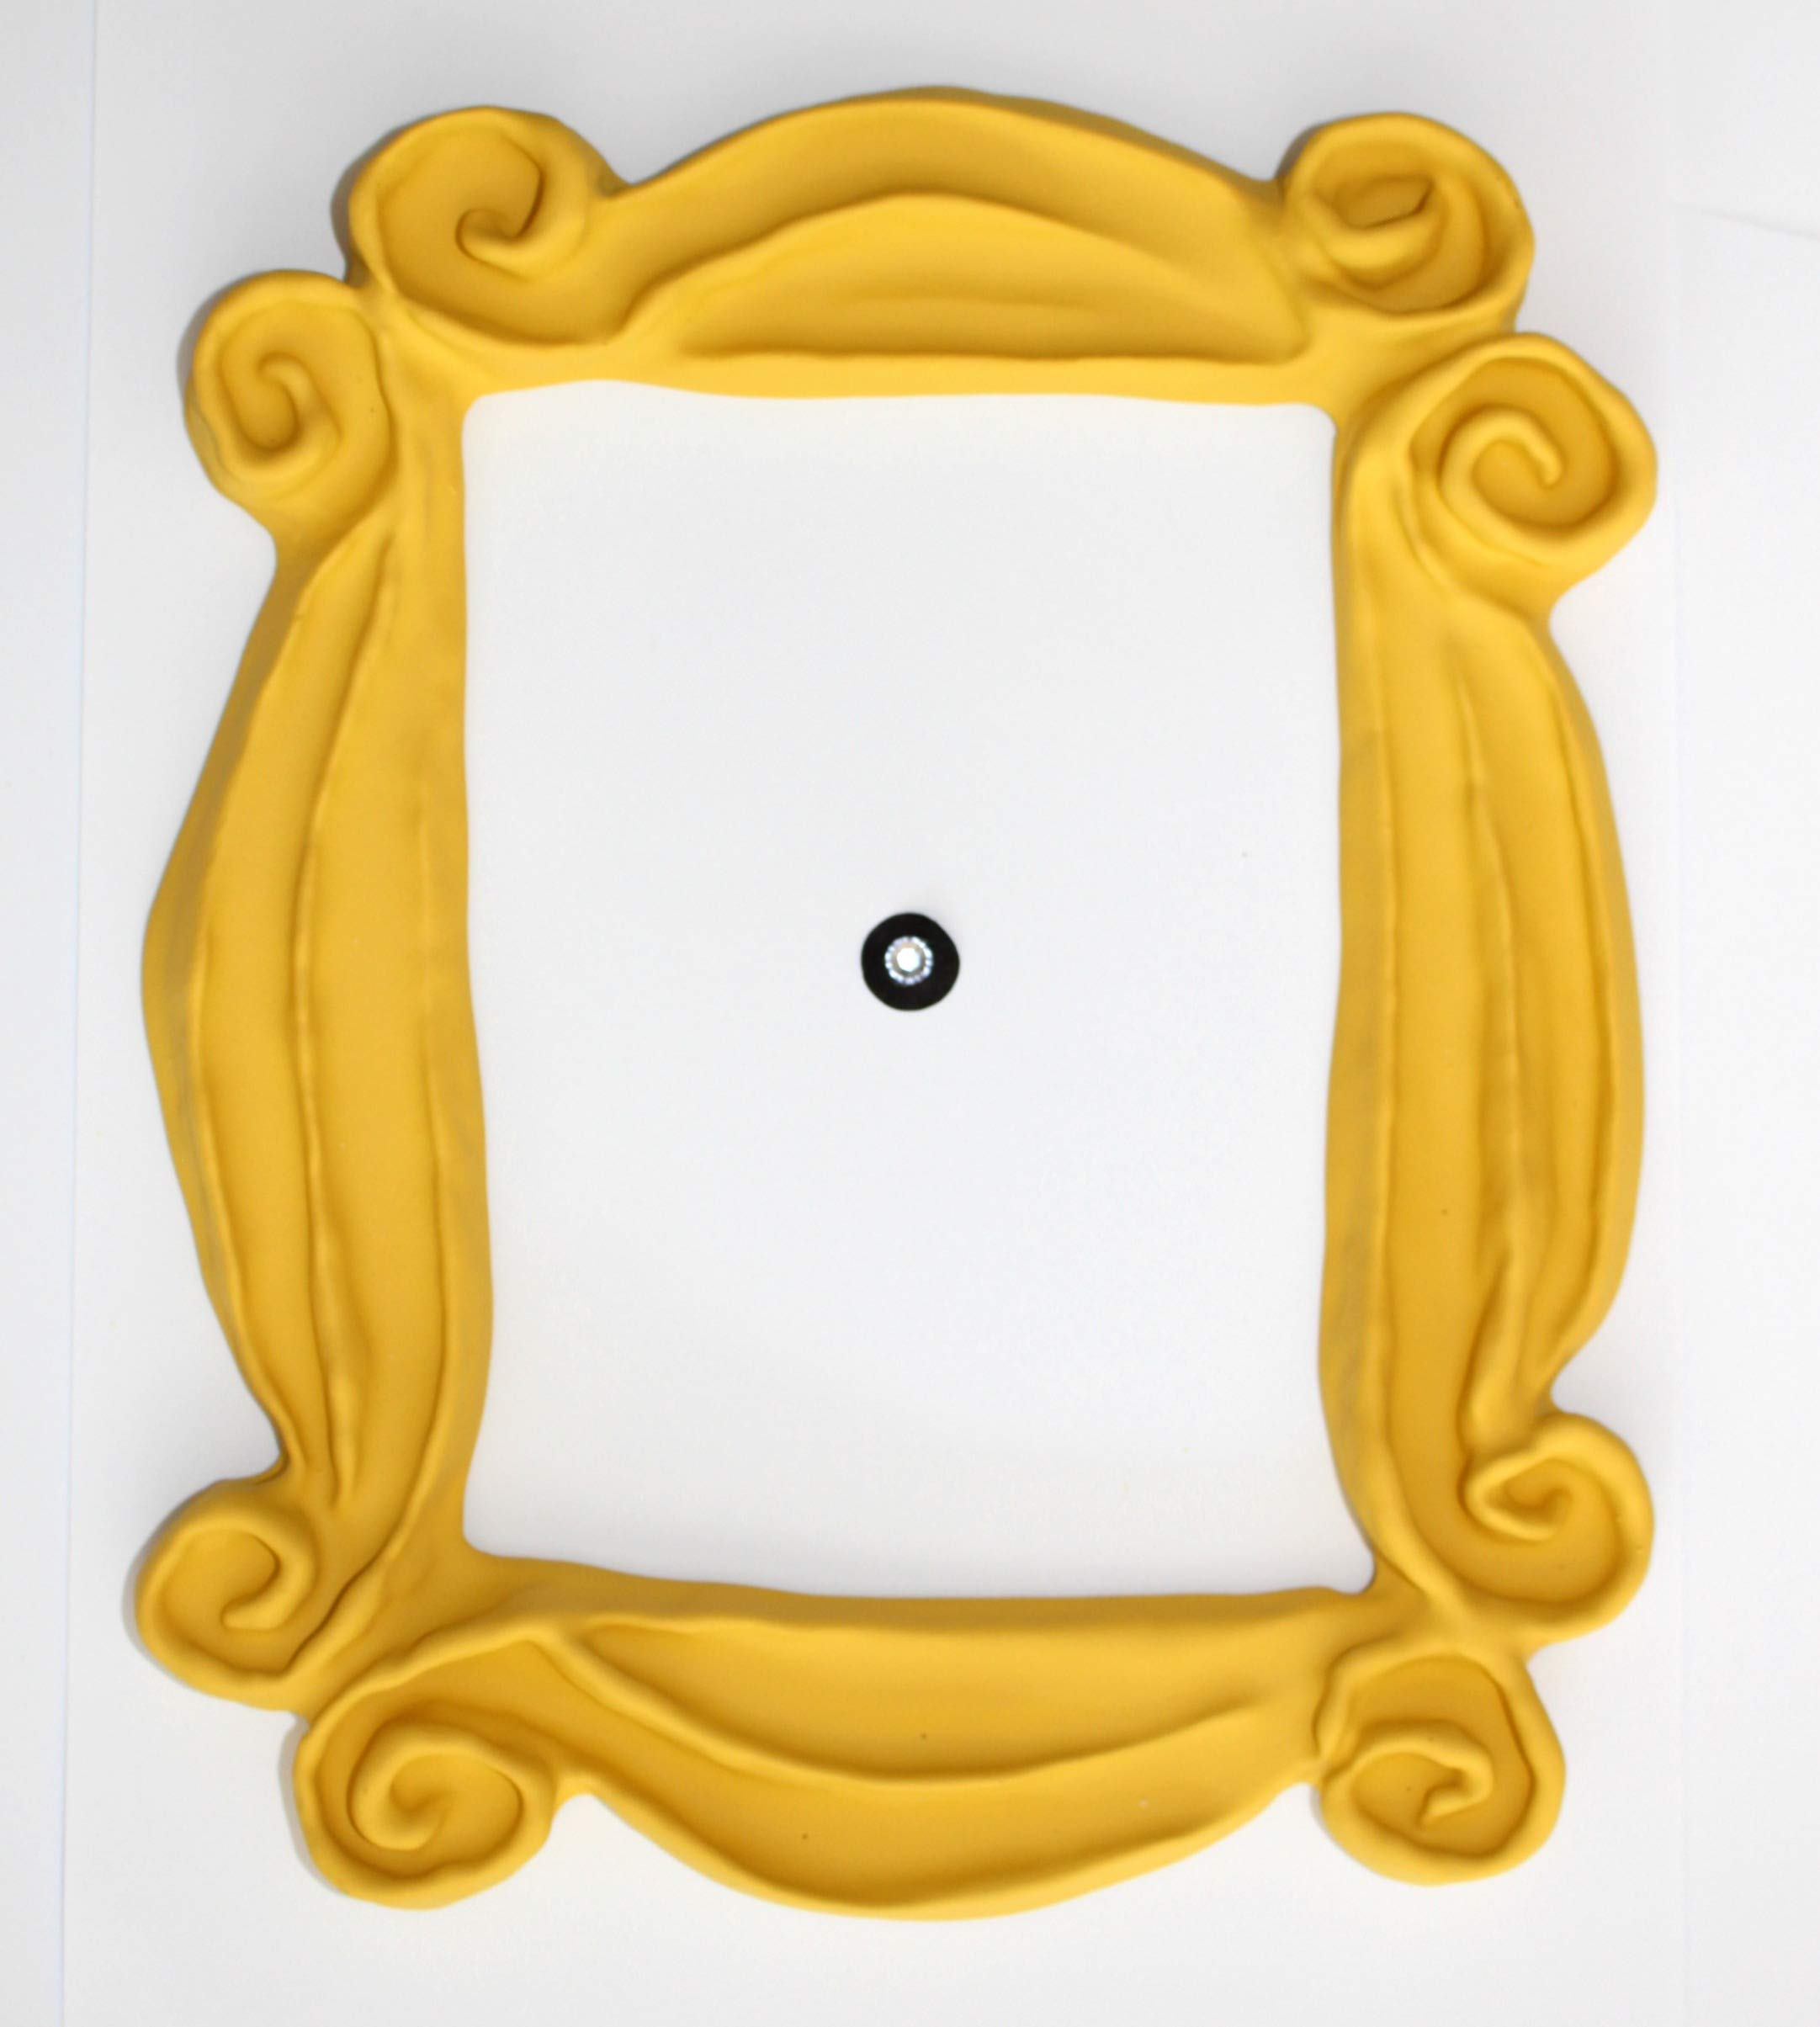 Handmade with Love by Fatima Peephole Yellow Frame. Replica of The Frame seen in Monica's Door. It has Two Side Tape. Ready to Hang. by Handmade with Love by Fatima